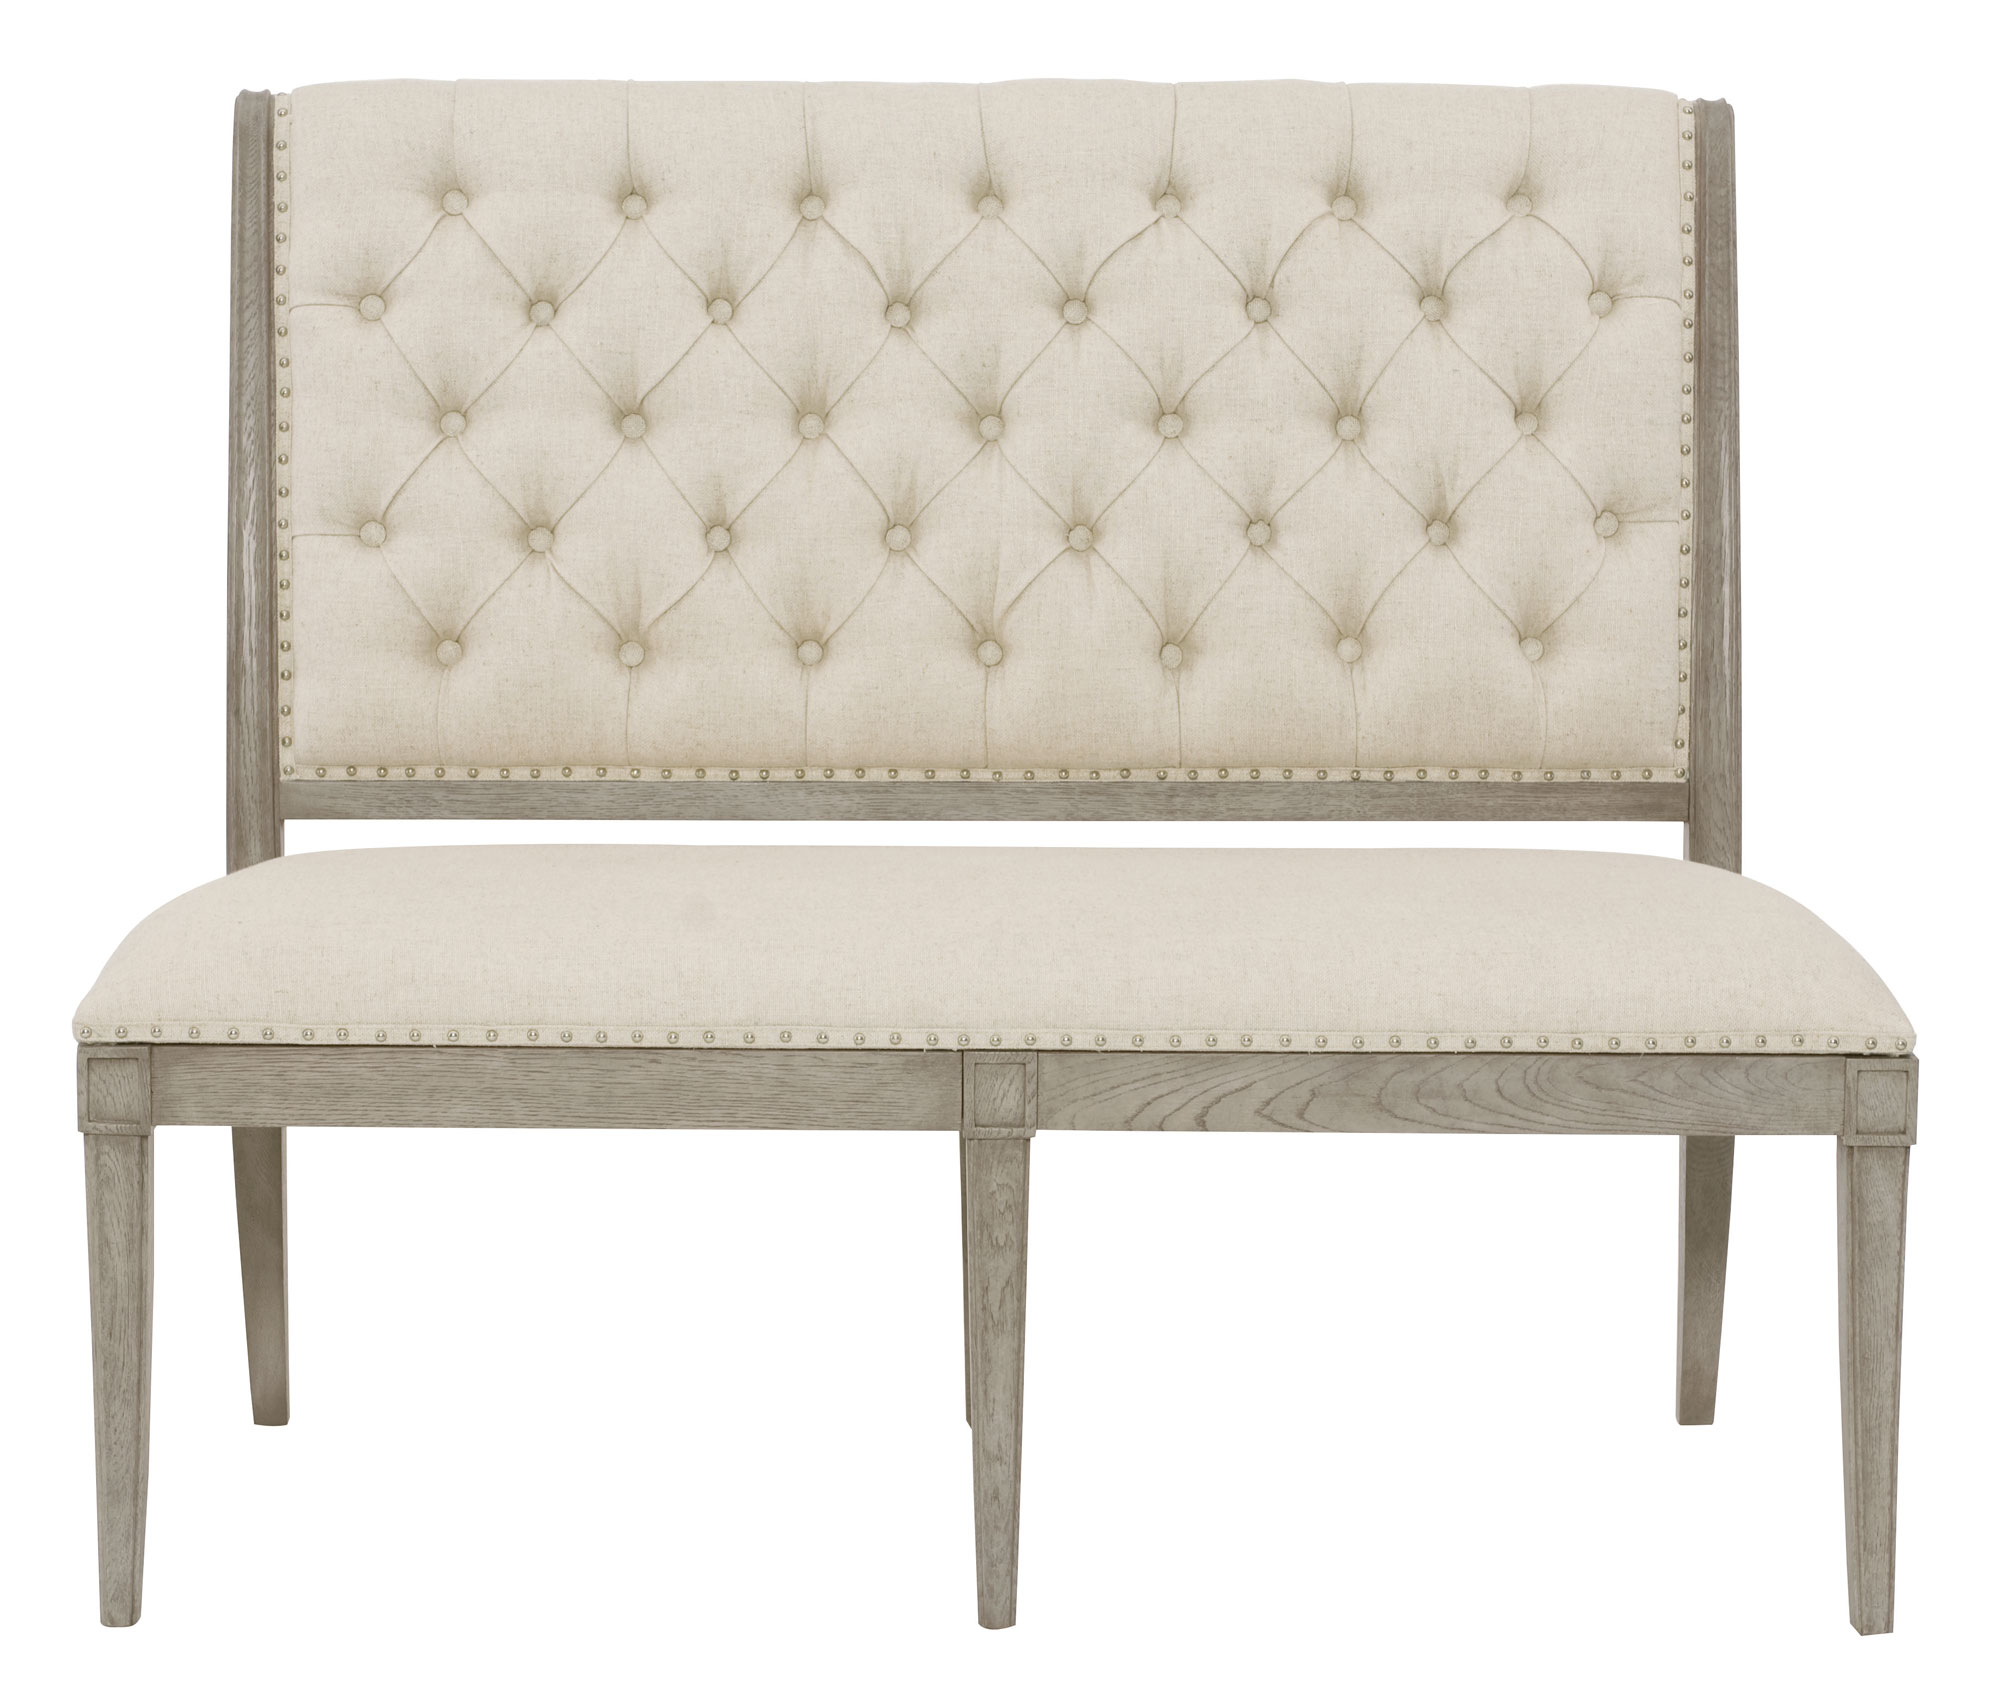 dining chairs canada upholstered modern side banquette | bernhardt